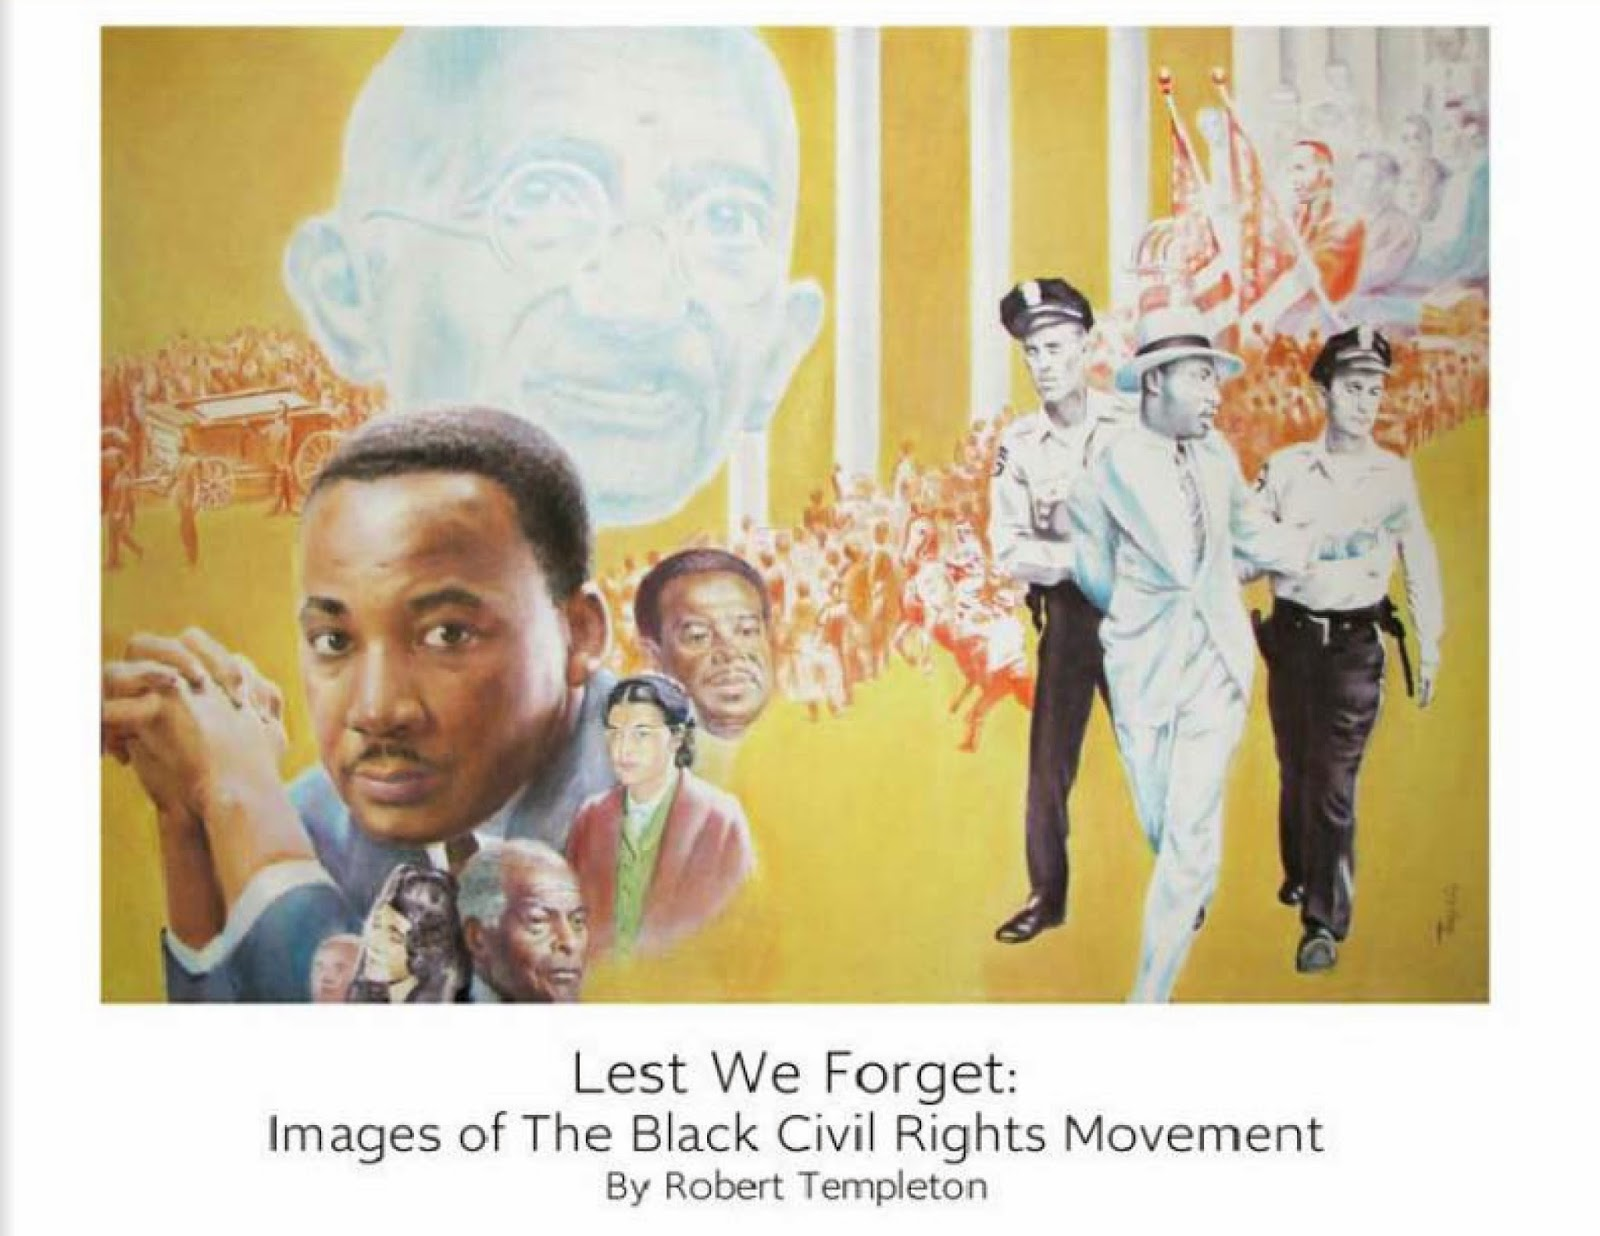 the civil rights movement in tuskegee The tuskegee airmen tuskegee institute's (tuskegee university's) strong interest in providing rights advocated to continue the struggle to end racial discrimination during the civil rights movement of the 1950s and 1960s.